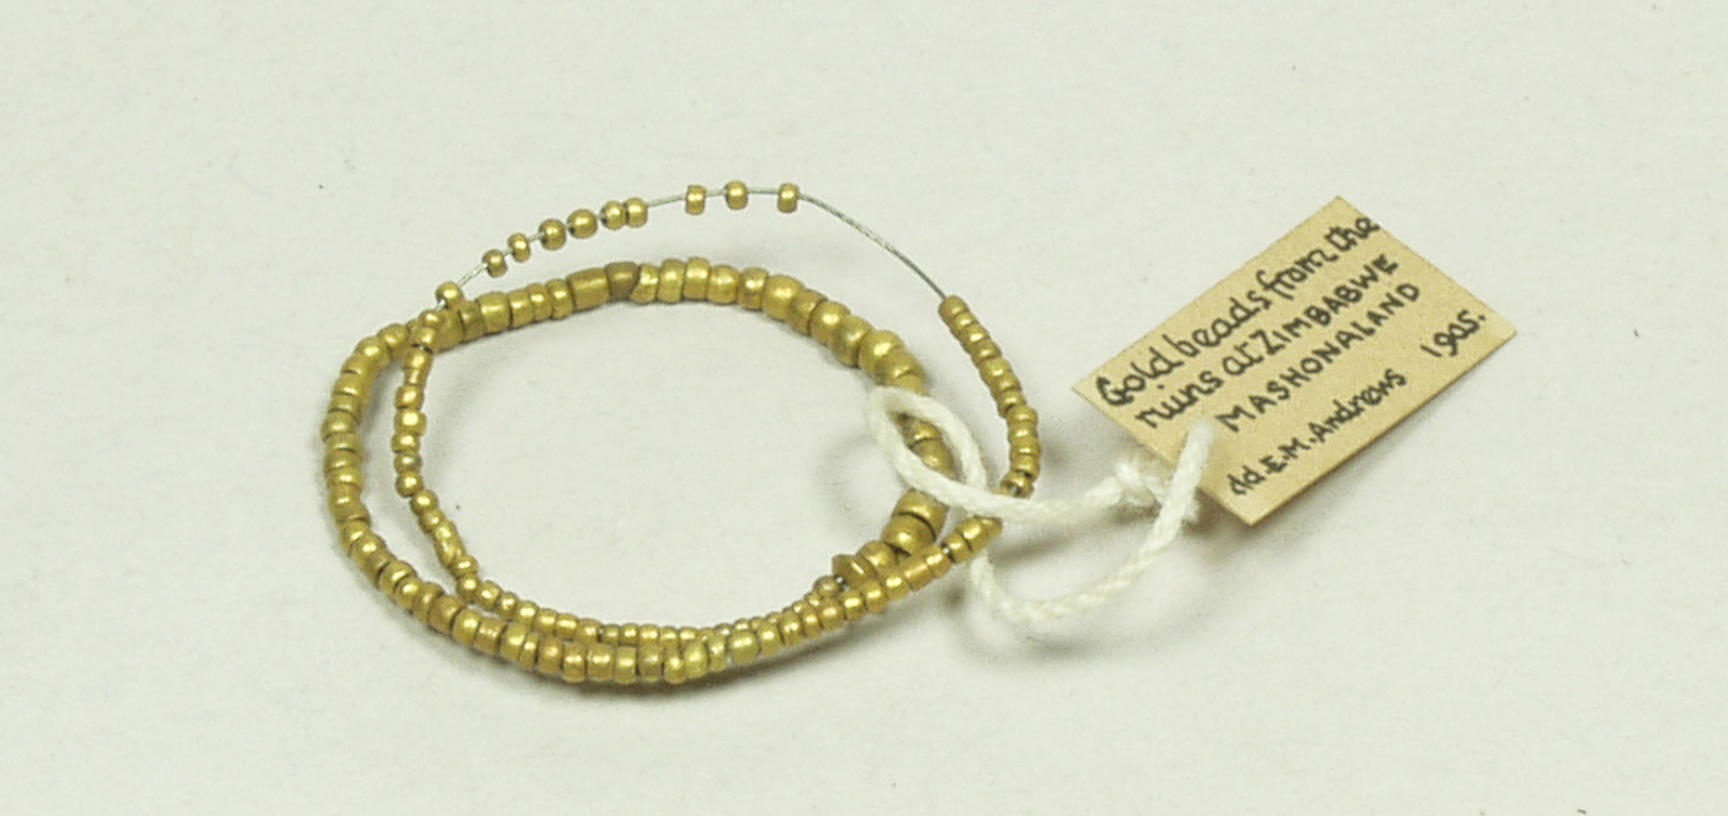 Gold beads from Great Zimbabwe